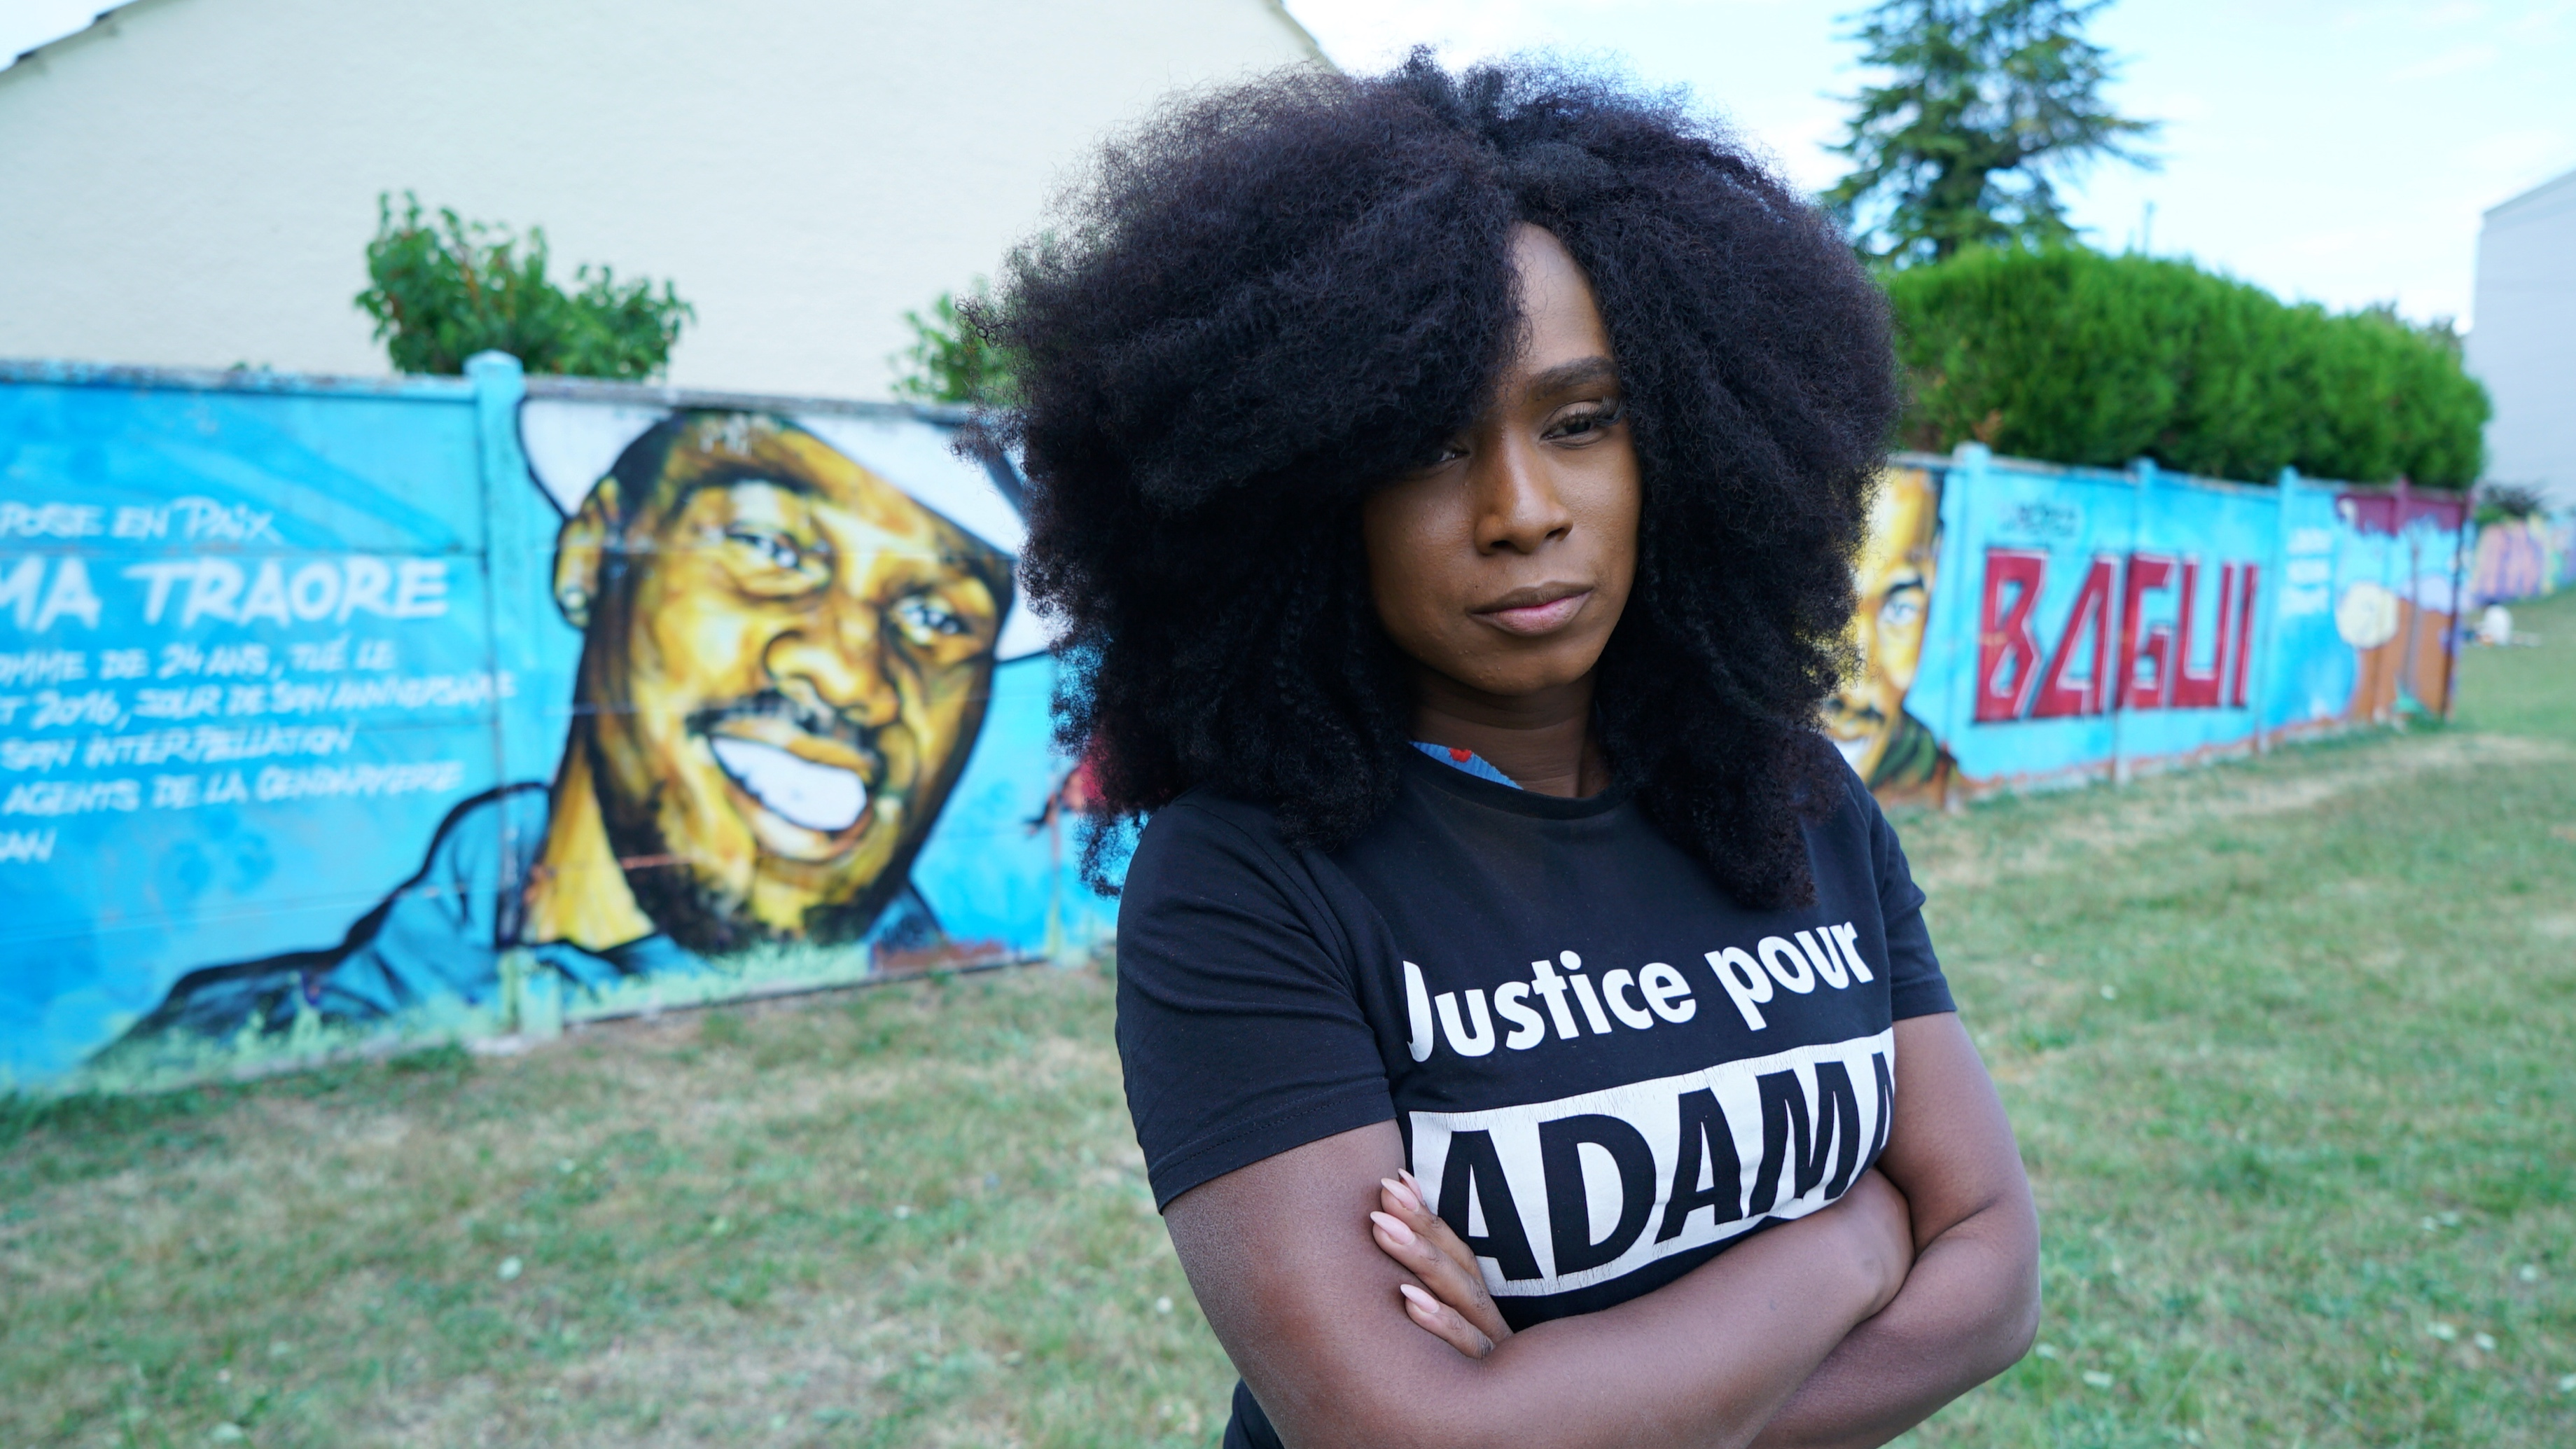 Assa Traore Sister Of Adama Traore A 24 Year Old Black Frenchman Who Died In 2016 During Police Detention Poses During An Interview With Reuters In Beaumont Sur Oise Near Paris June 7 2020 The